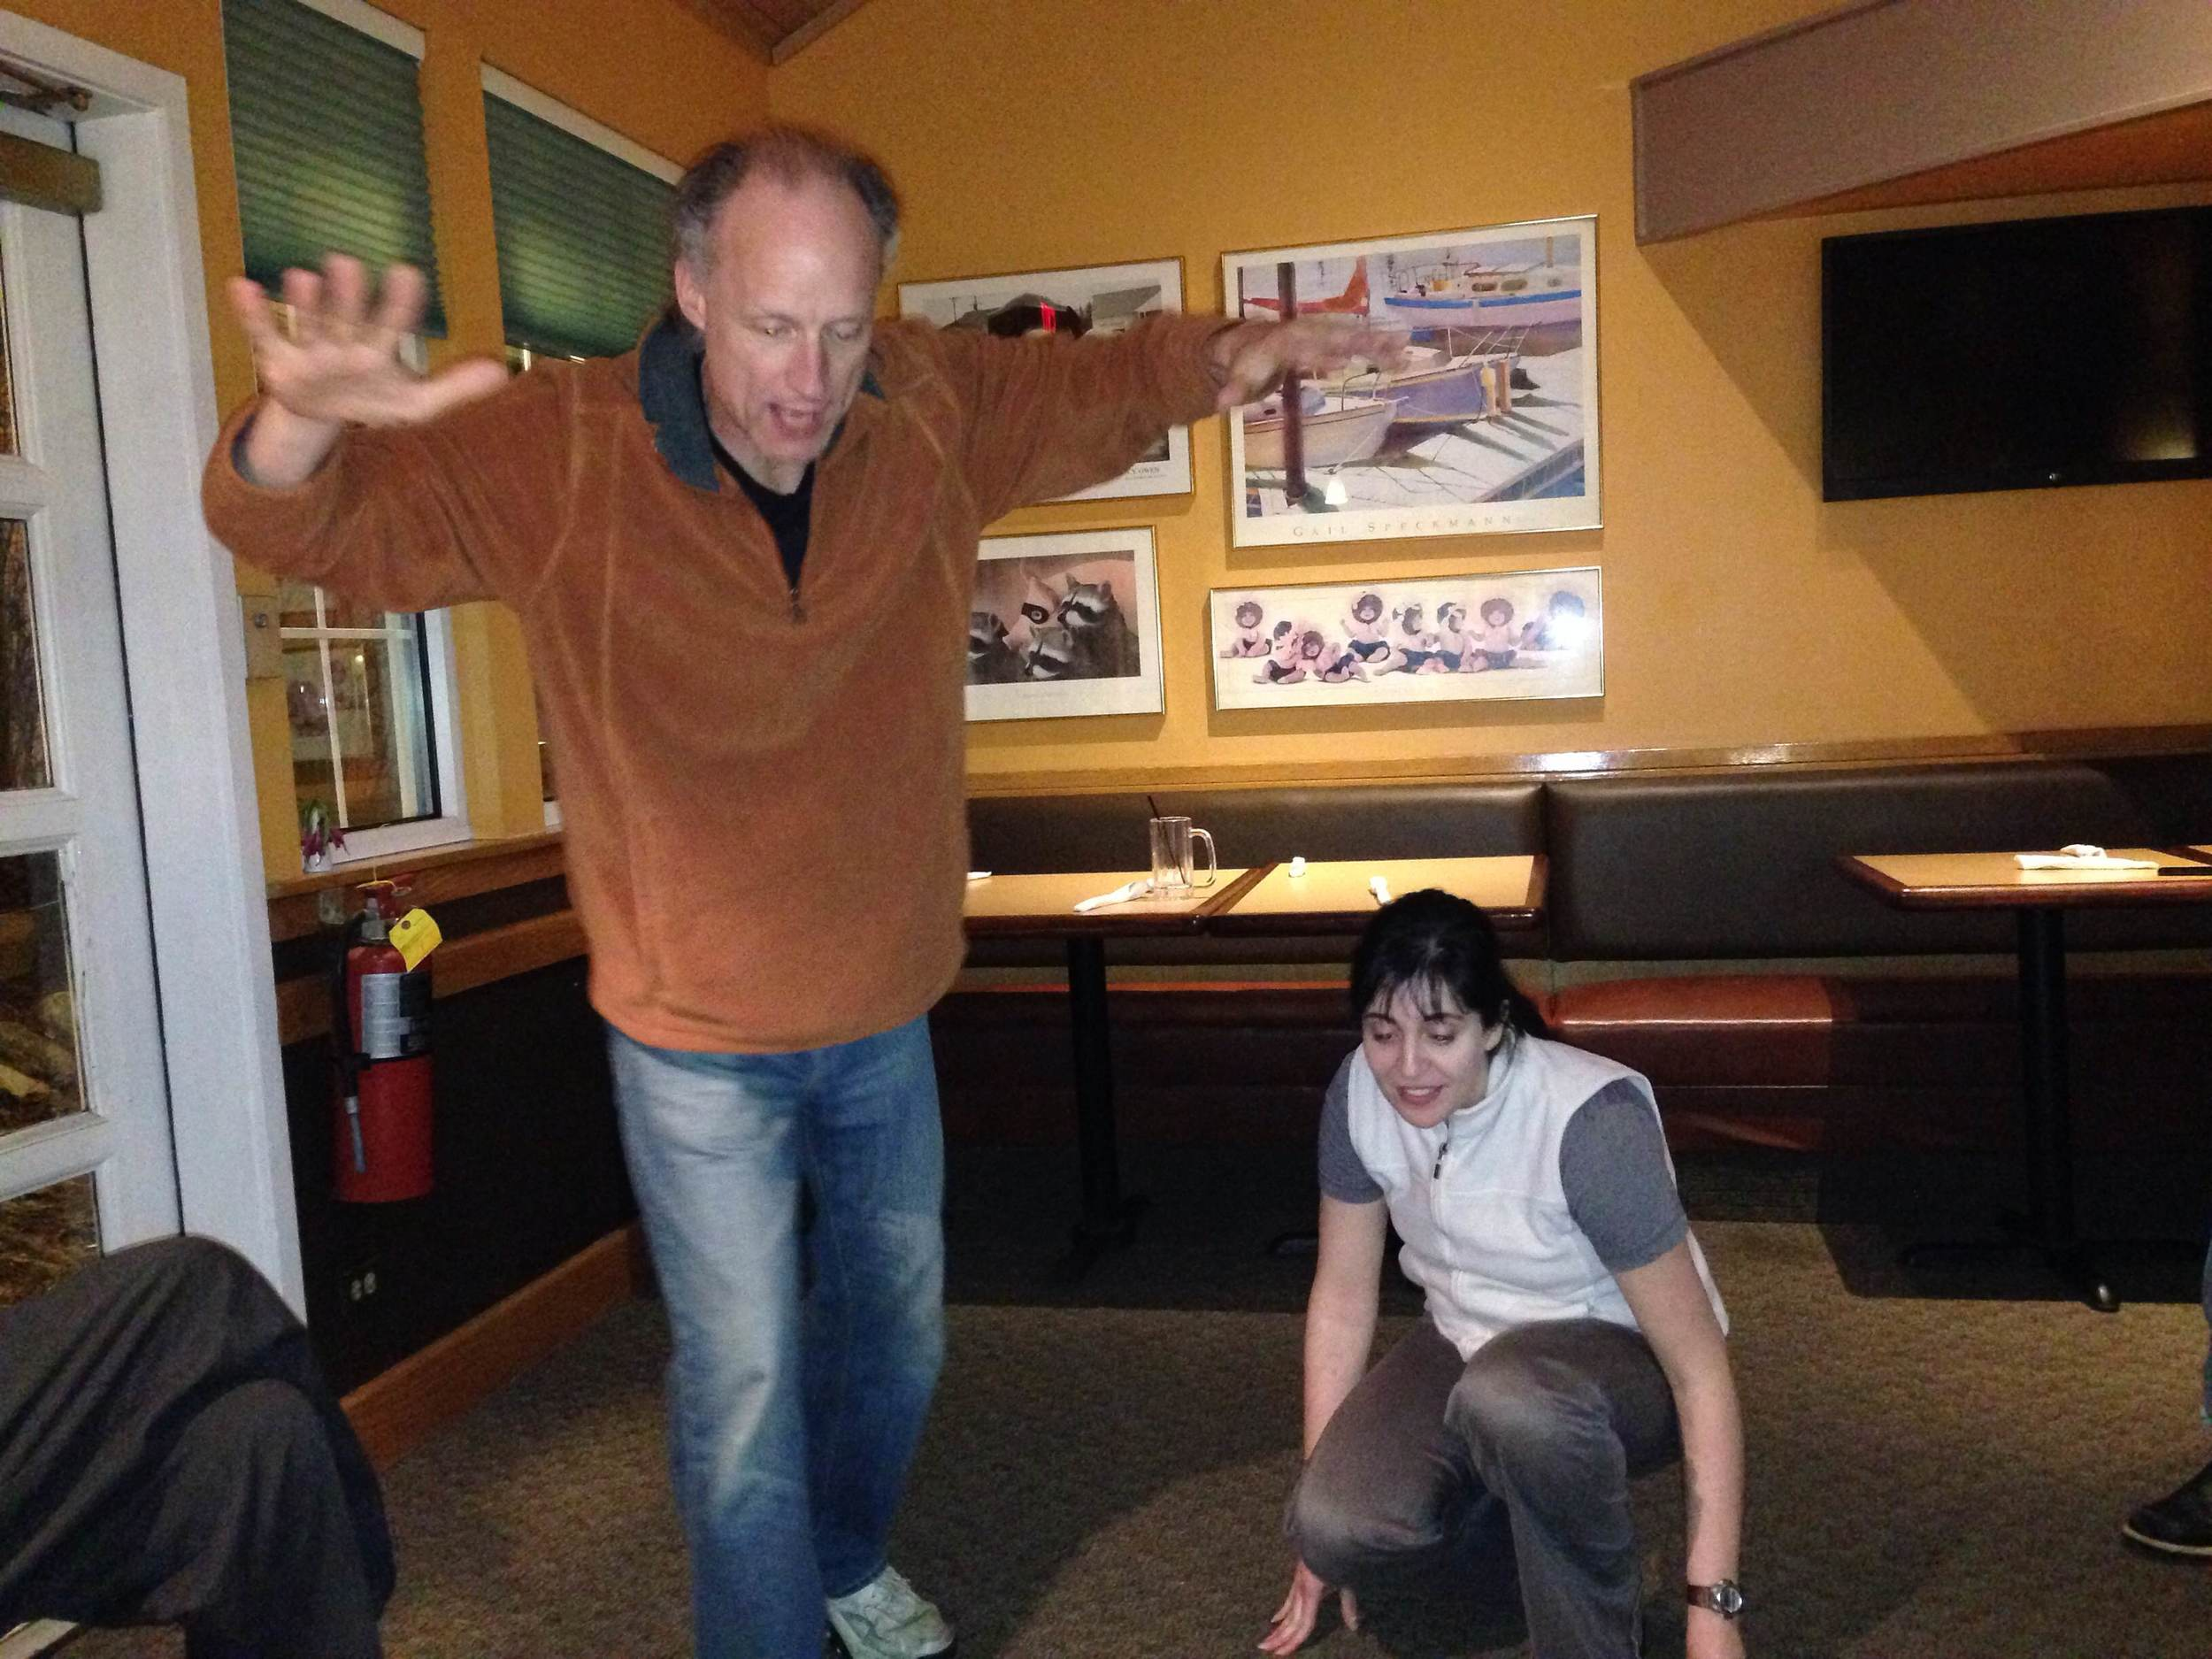 Richard O. and Kimberly G acting out an IMPROV scene.